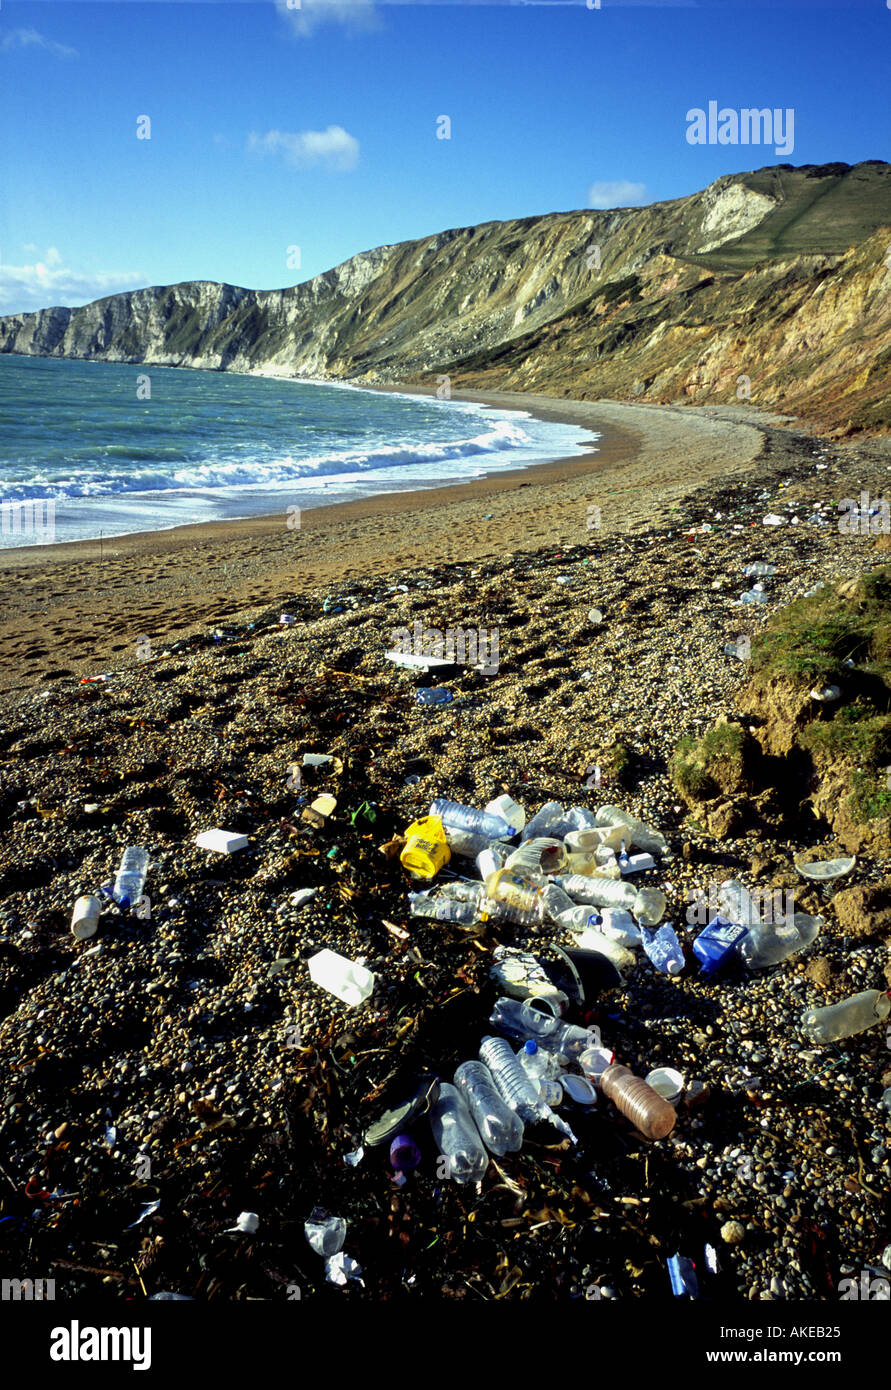 Plastic pollution at Worbarrow Bay, Nr Tyneham, Purbeck Hills, on the Jurassic Coast in Dorset, England, UK - Stock Image